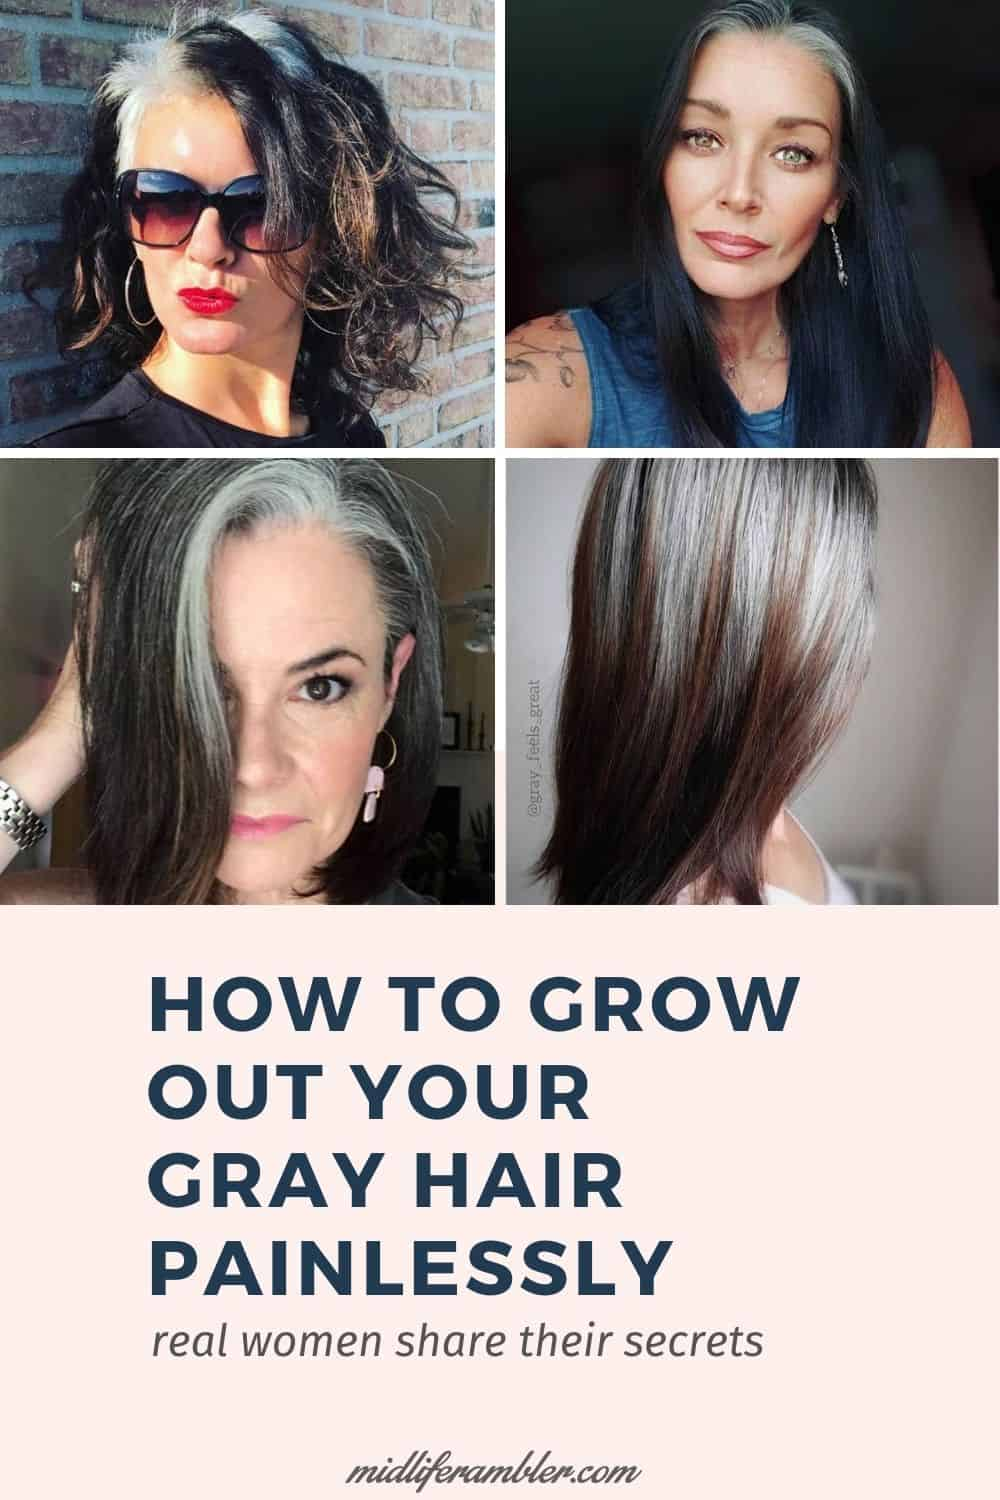 25 Women Going Gray Gracefully Who Will Inspire You to Quit Dying Your Hair 25